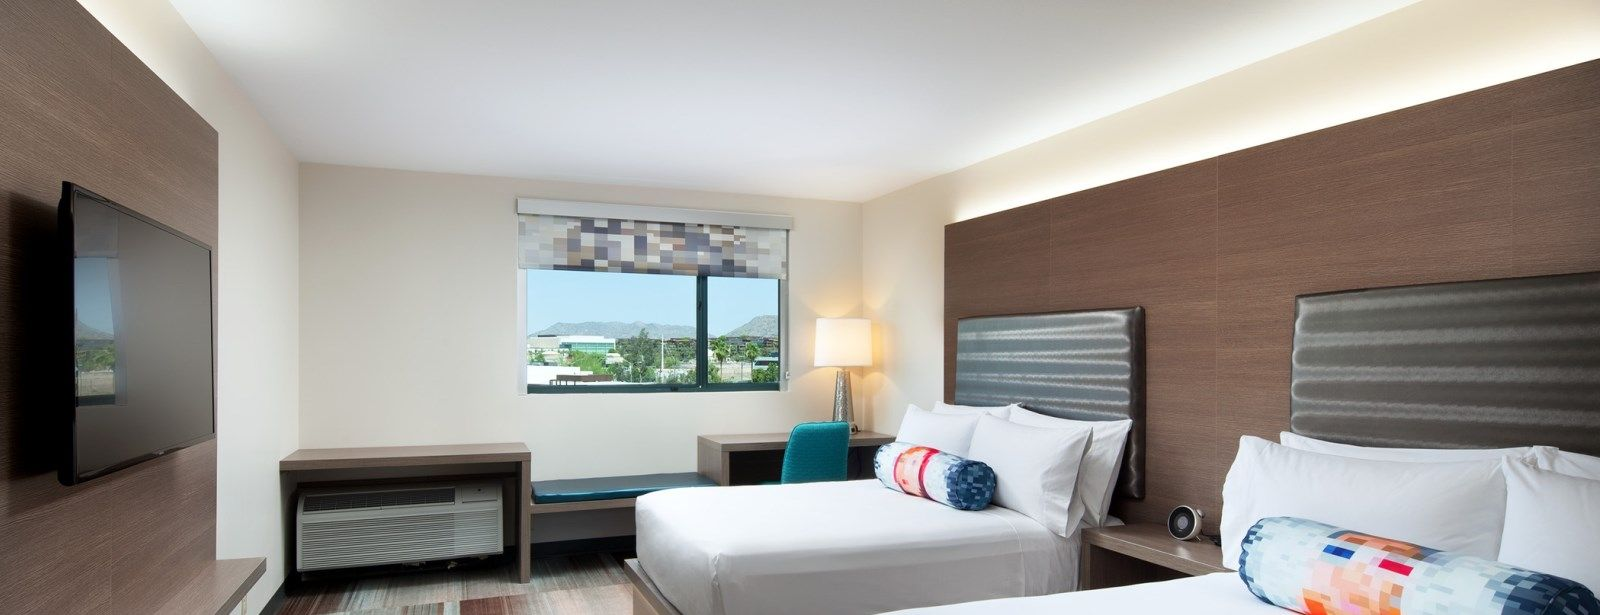 Scottsdale Accommodations - Aloft Double Guest Room